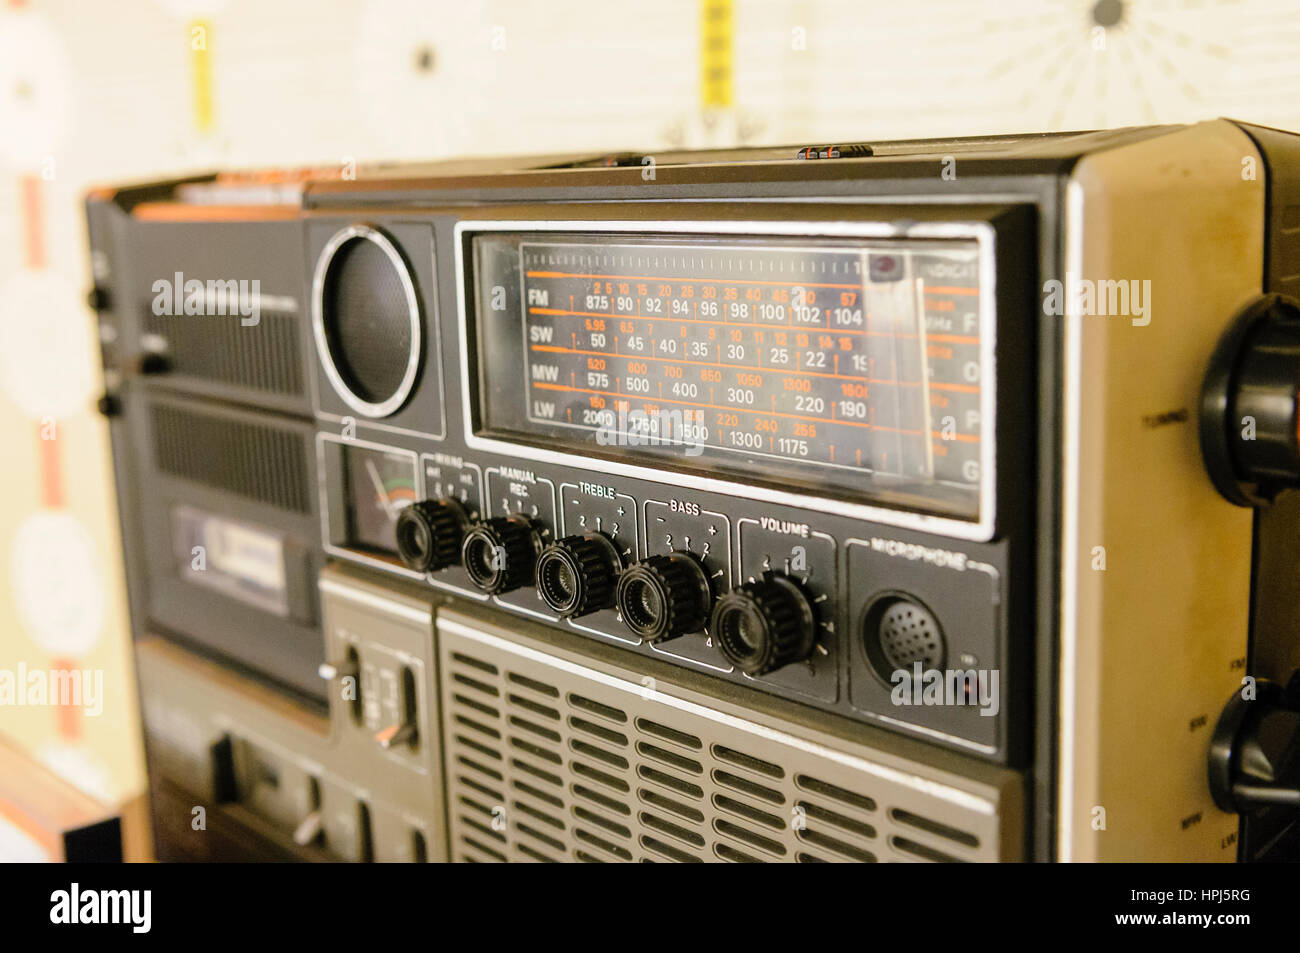 Radio Cassette Player from the 1980s. - Stock Image